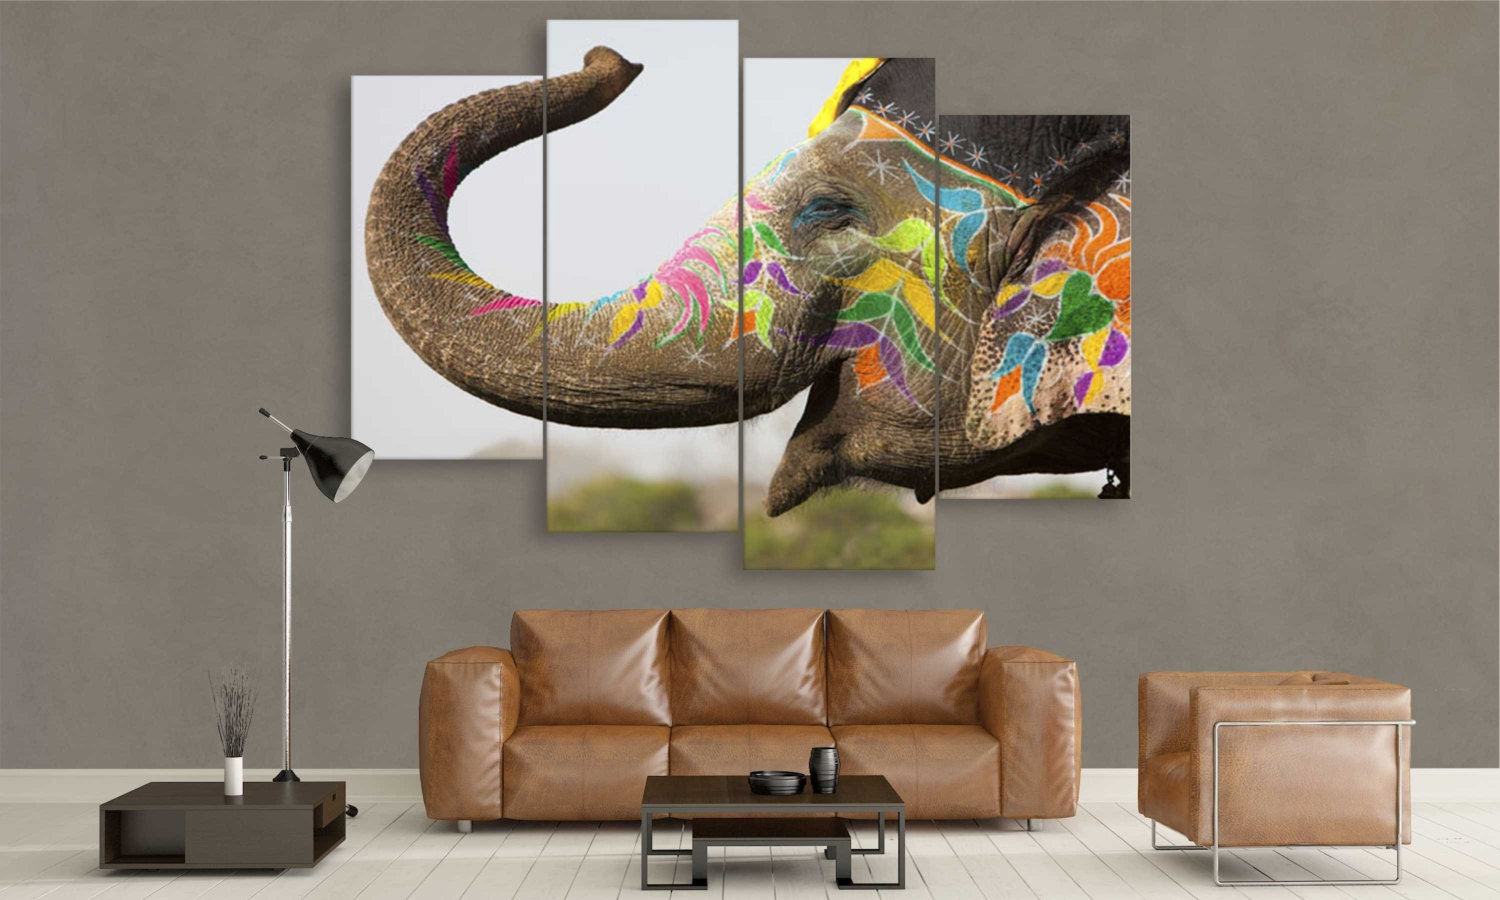 Large elephant canvas panel wall art by canvasfactoryco for Large panel wall art